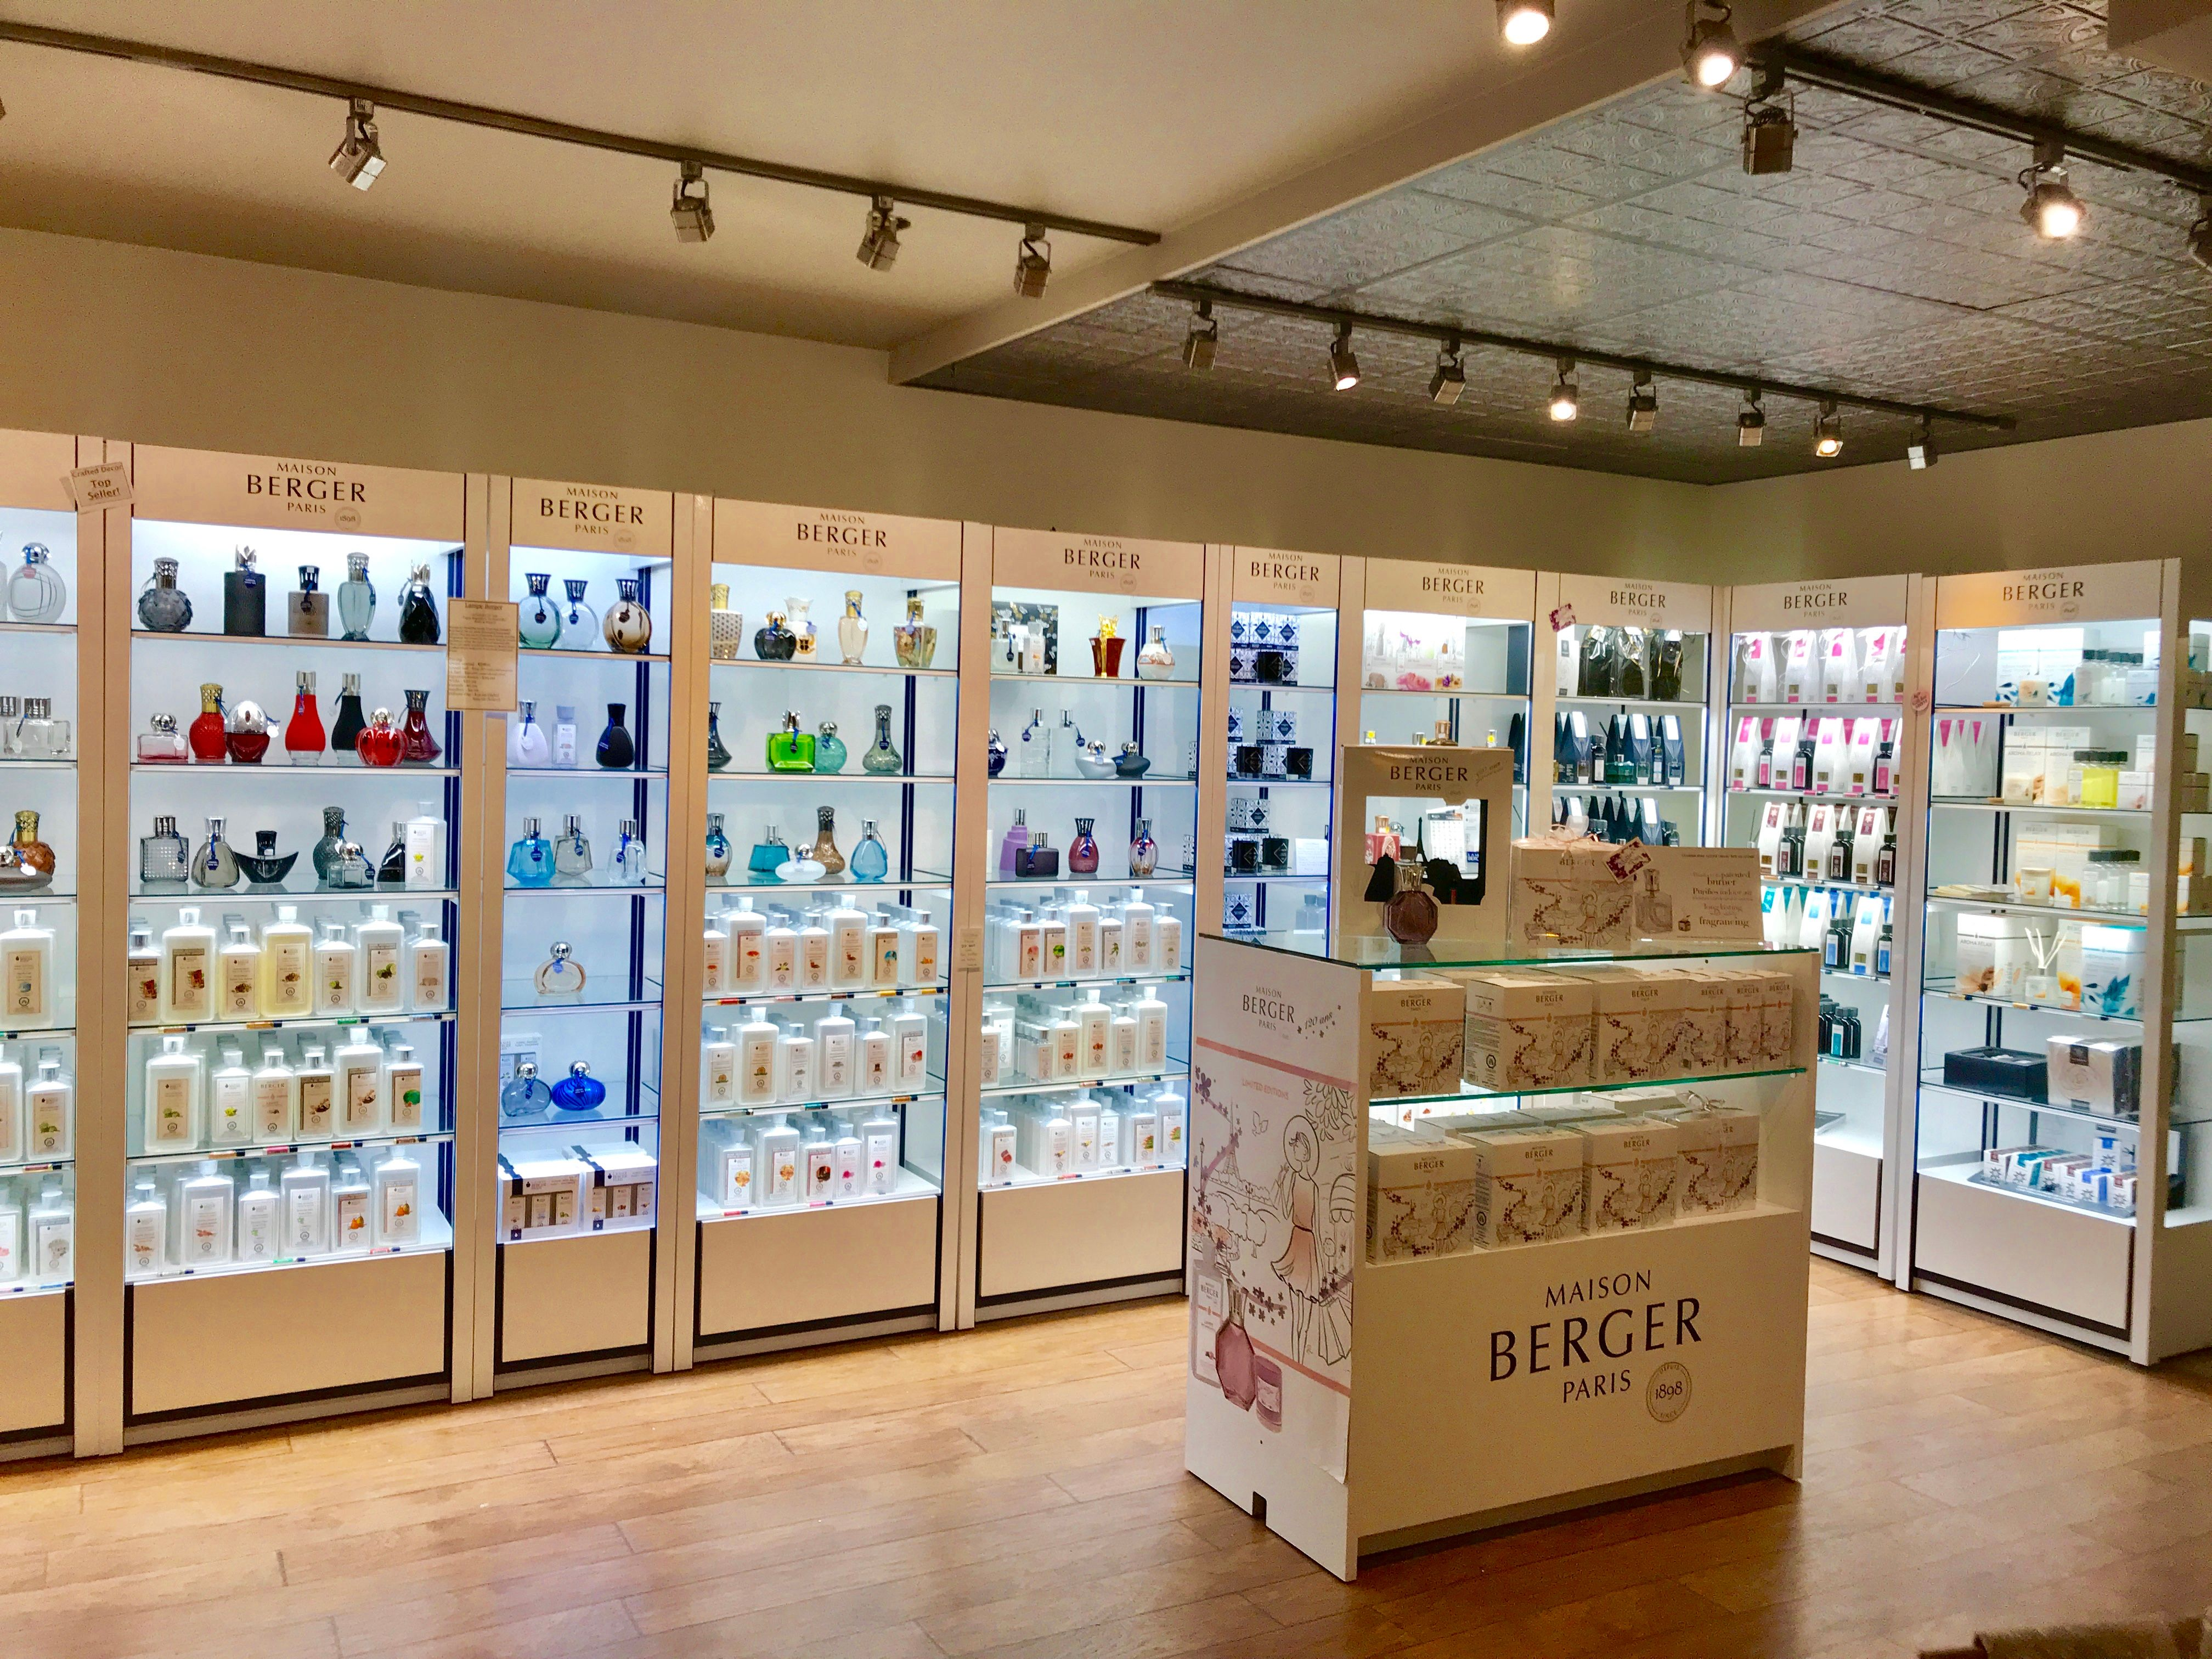 Lampe Berger Celebrated 120 Years In Business With A Name Change Maison Berger To Better Reflect Their Expansion Pharmacy Decor Store Design Interior Decor